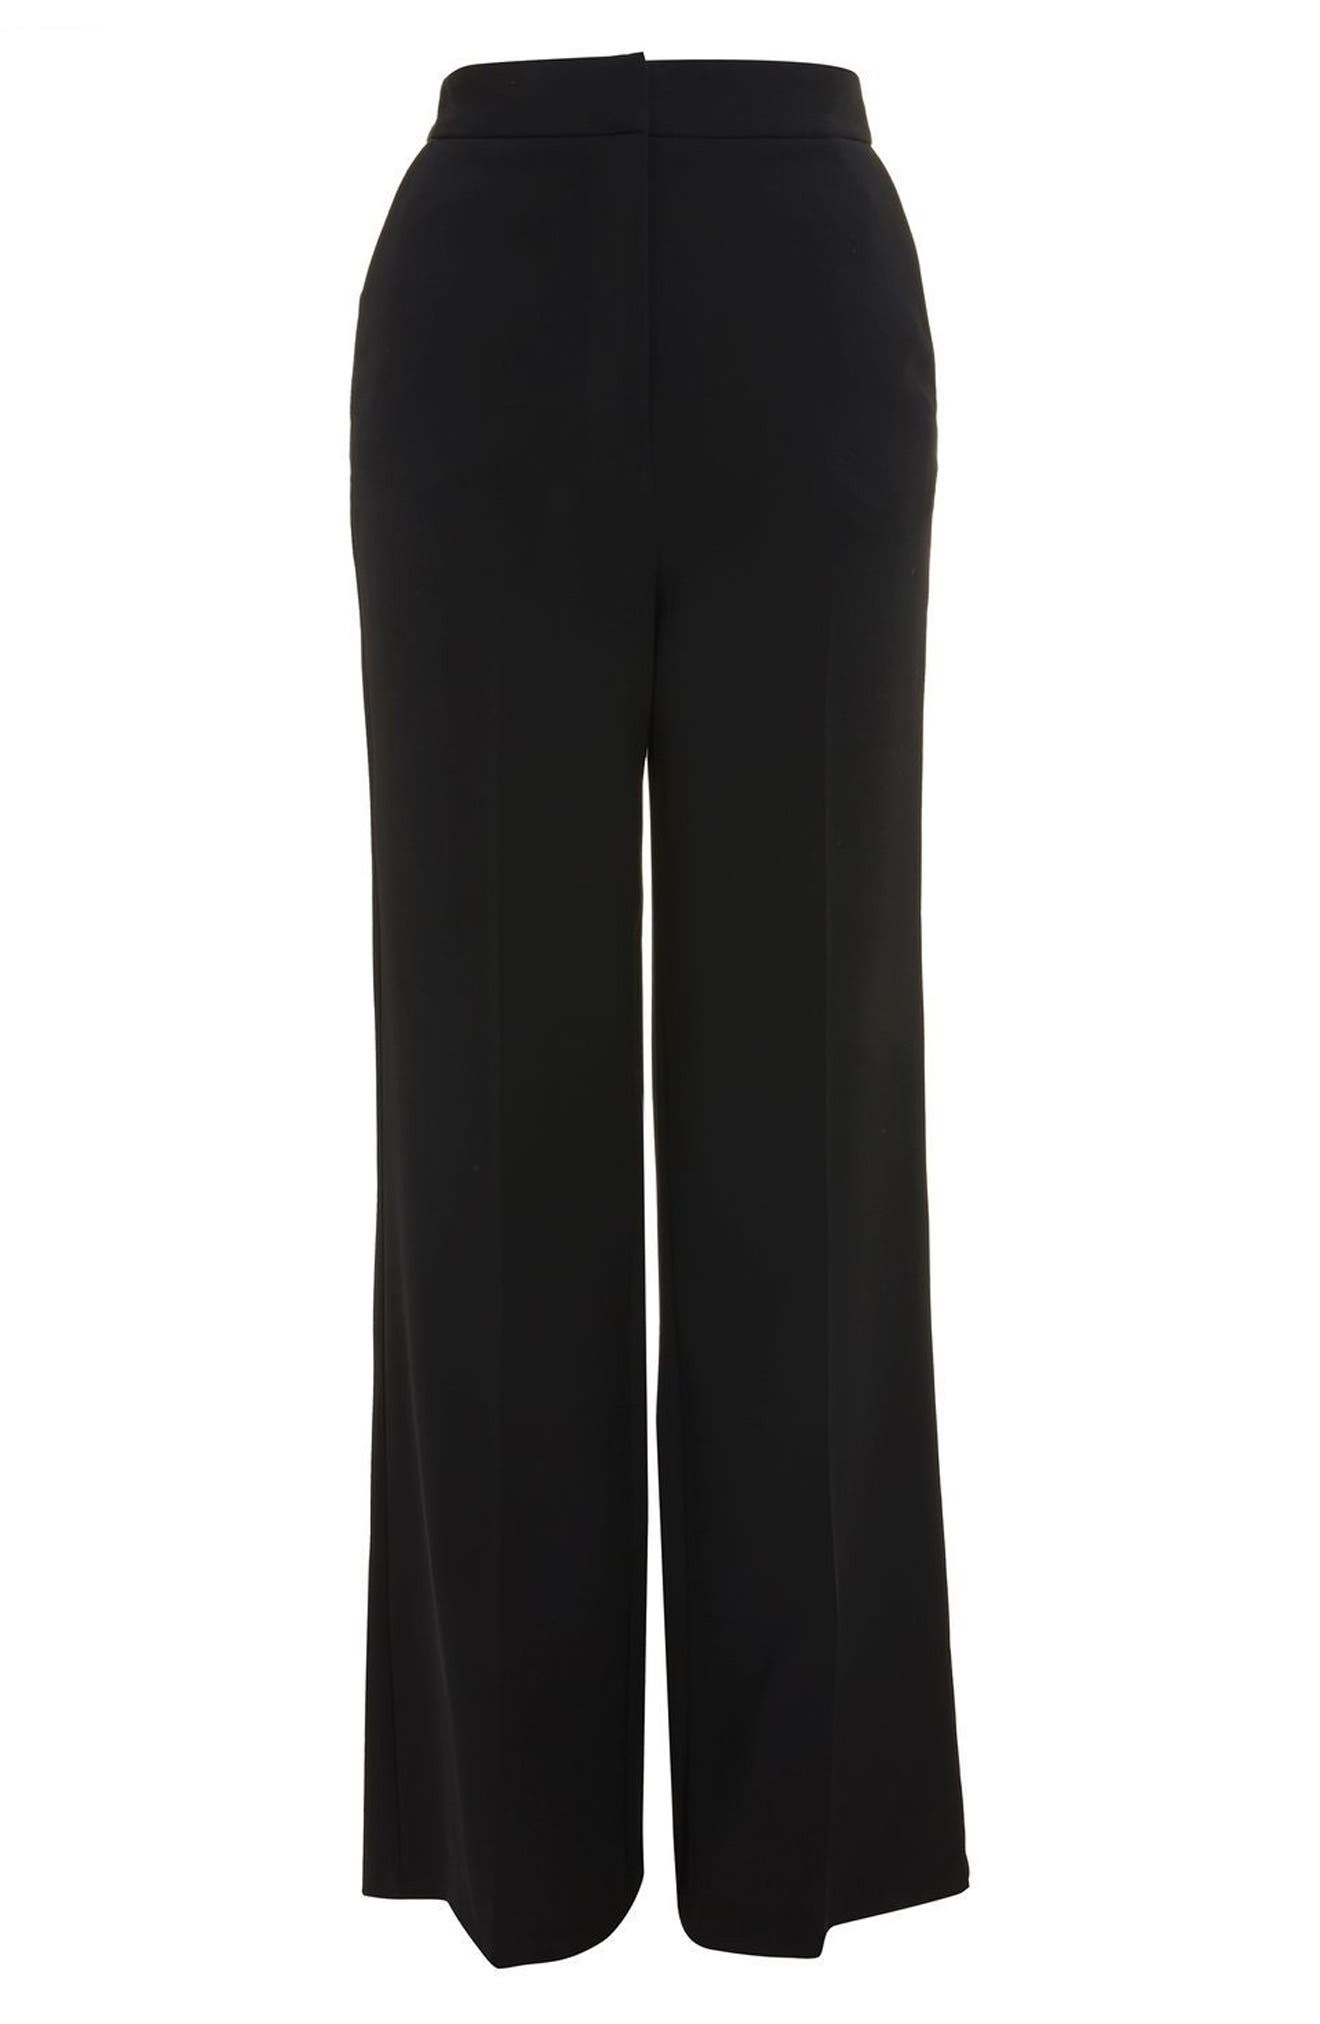 High Waist Wide Leg Trousers,                             Alternate thumbnail 4, color,                             Black